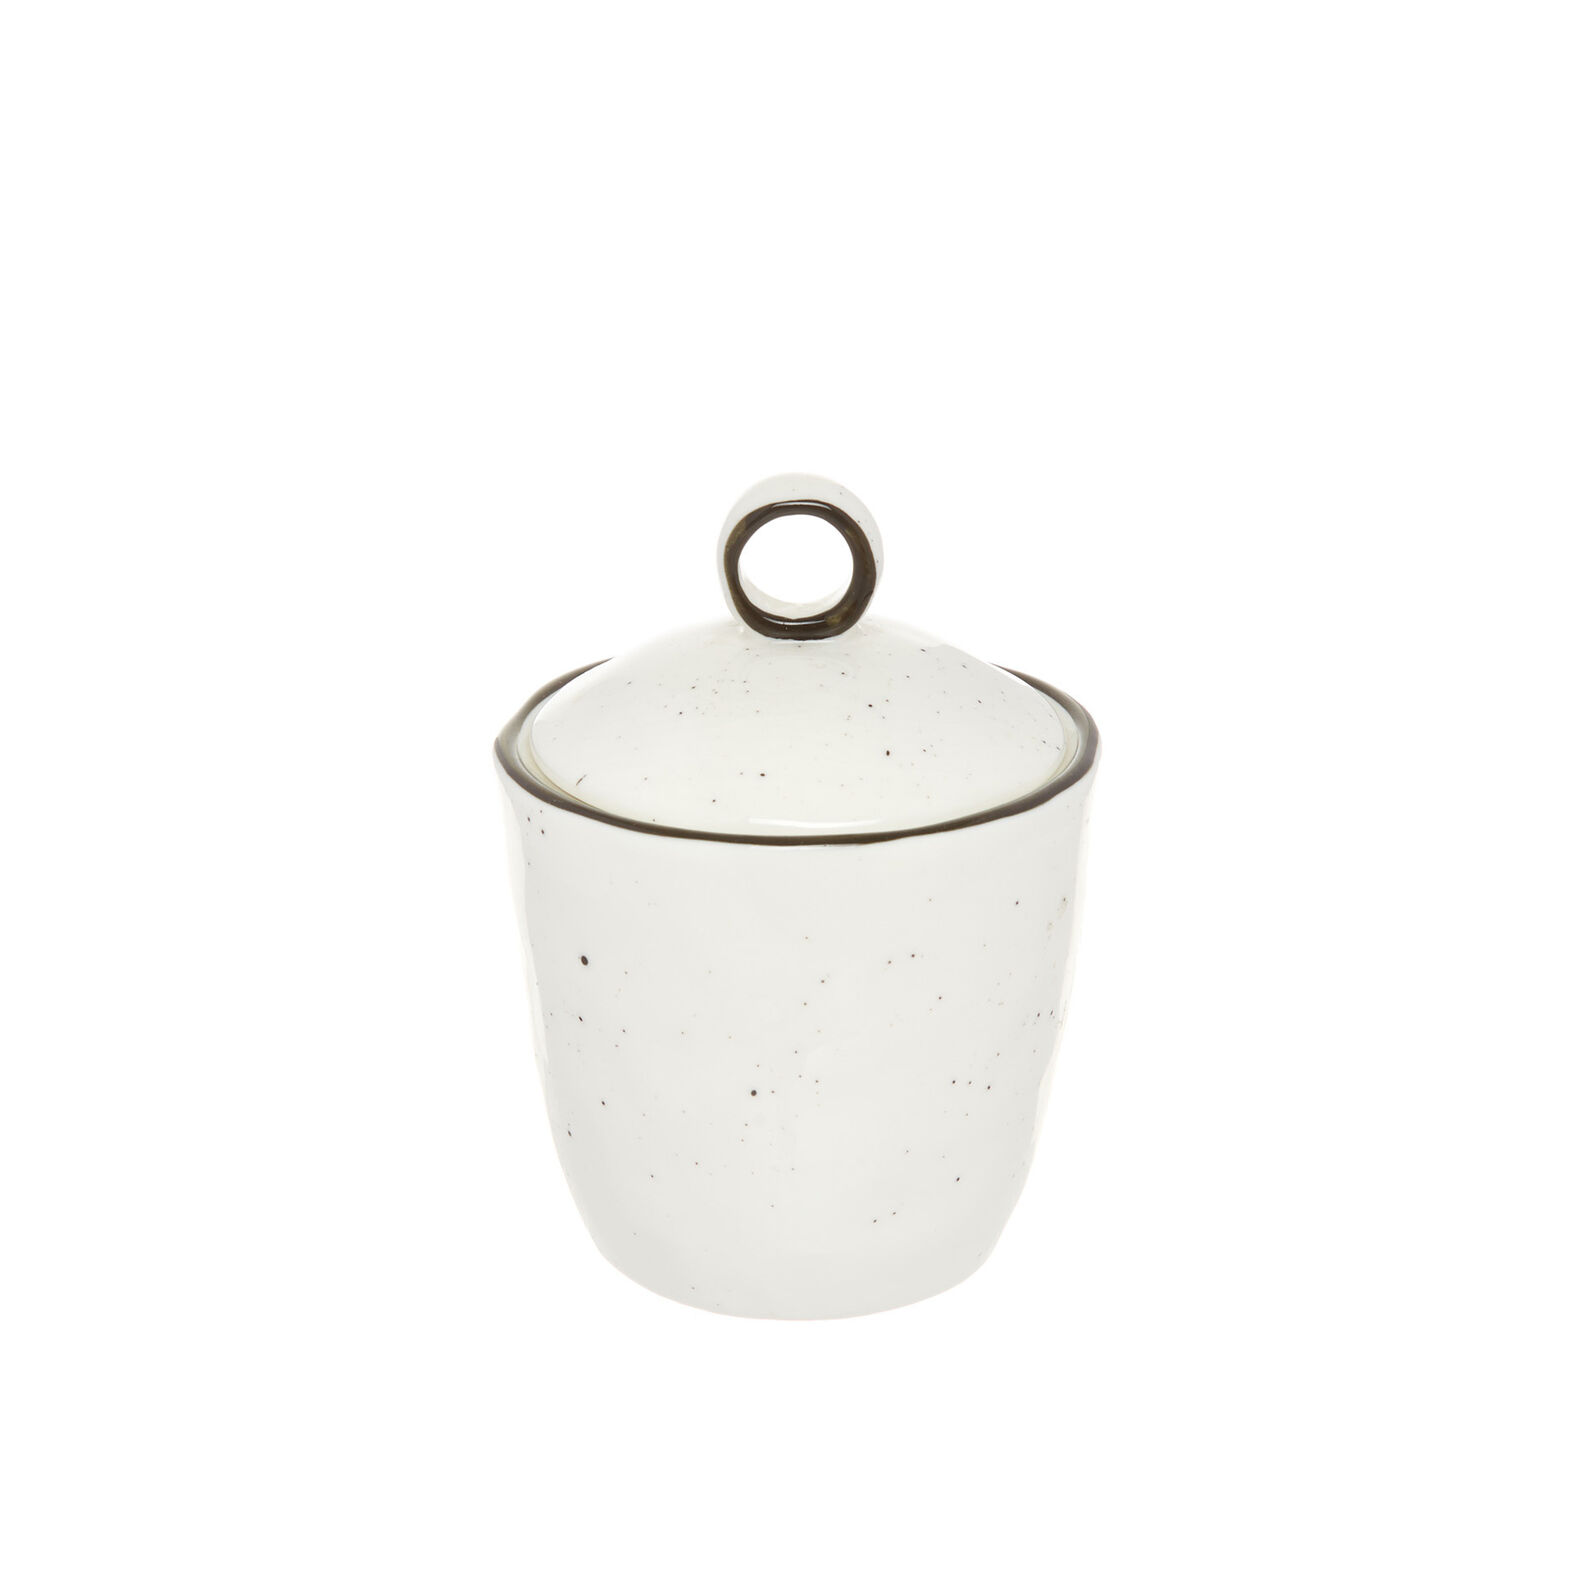 Ginevra porcelain sugar bowl